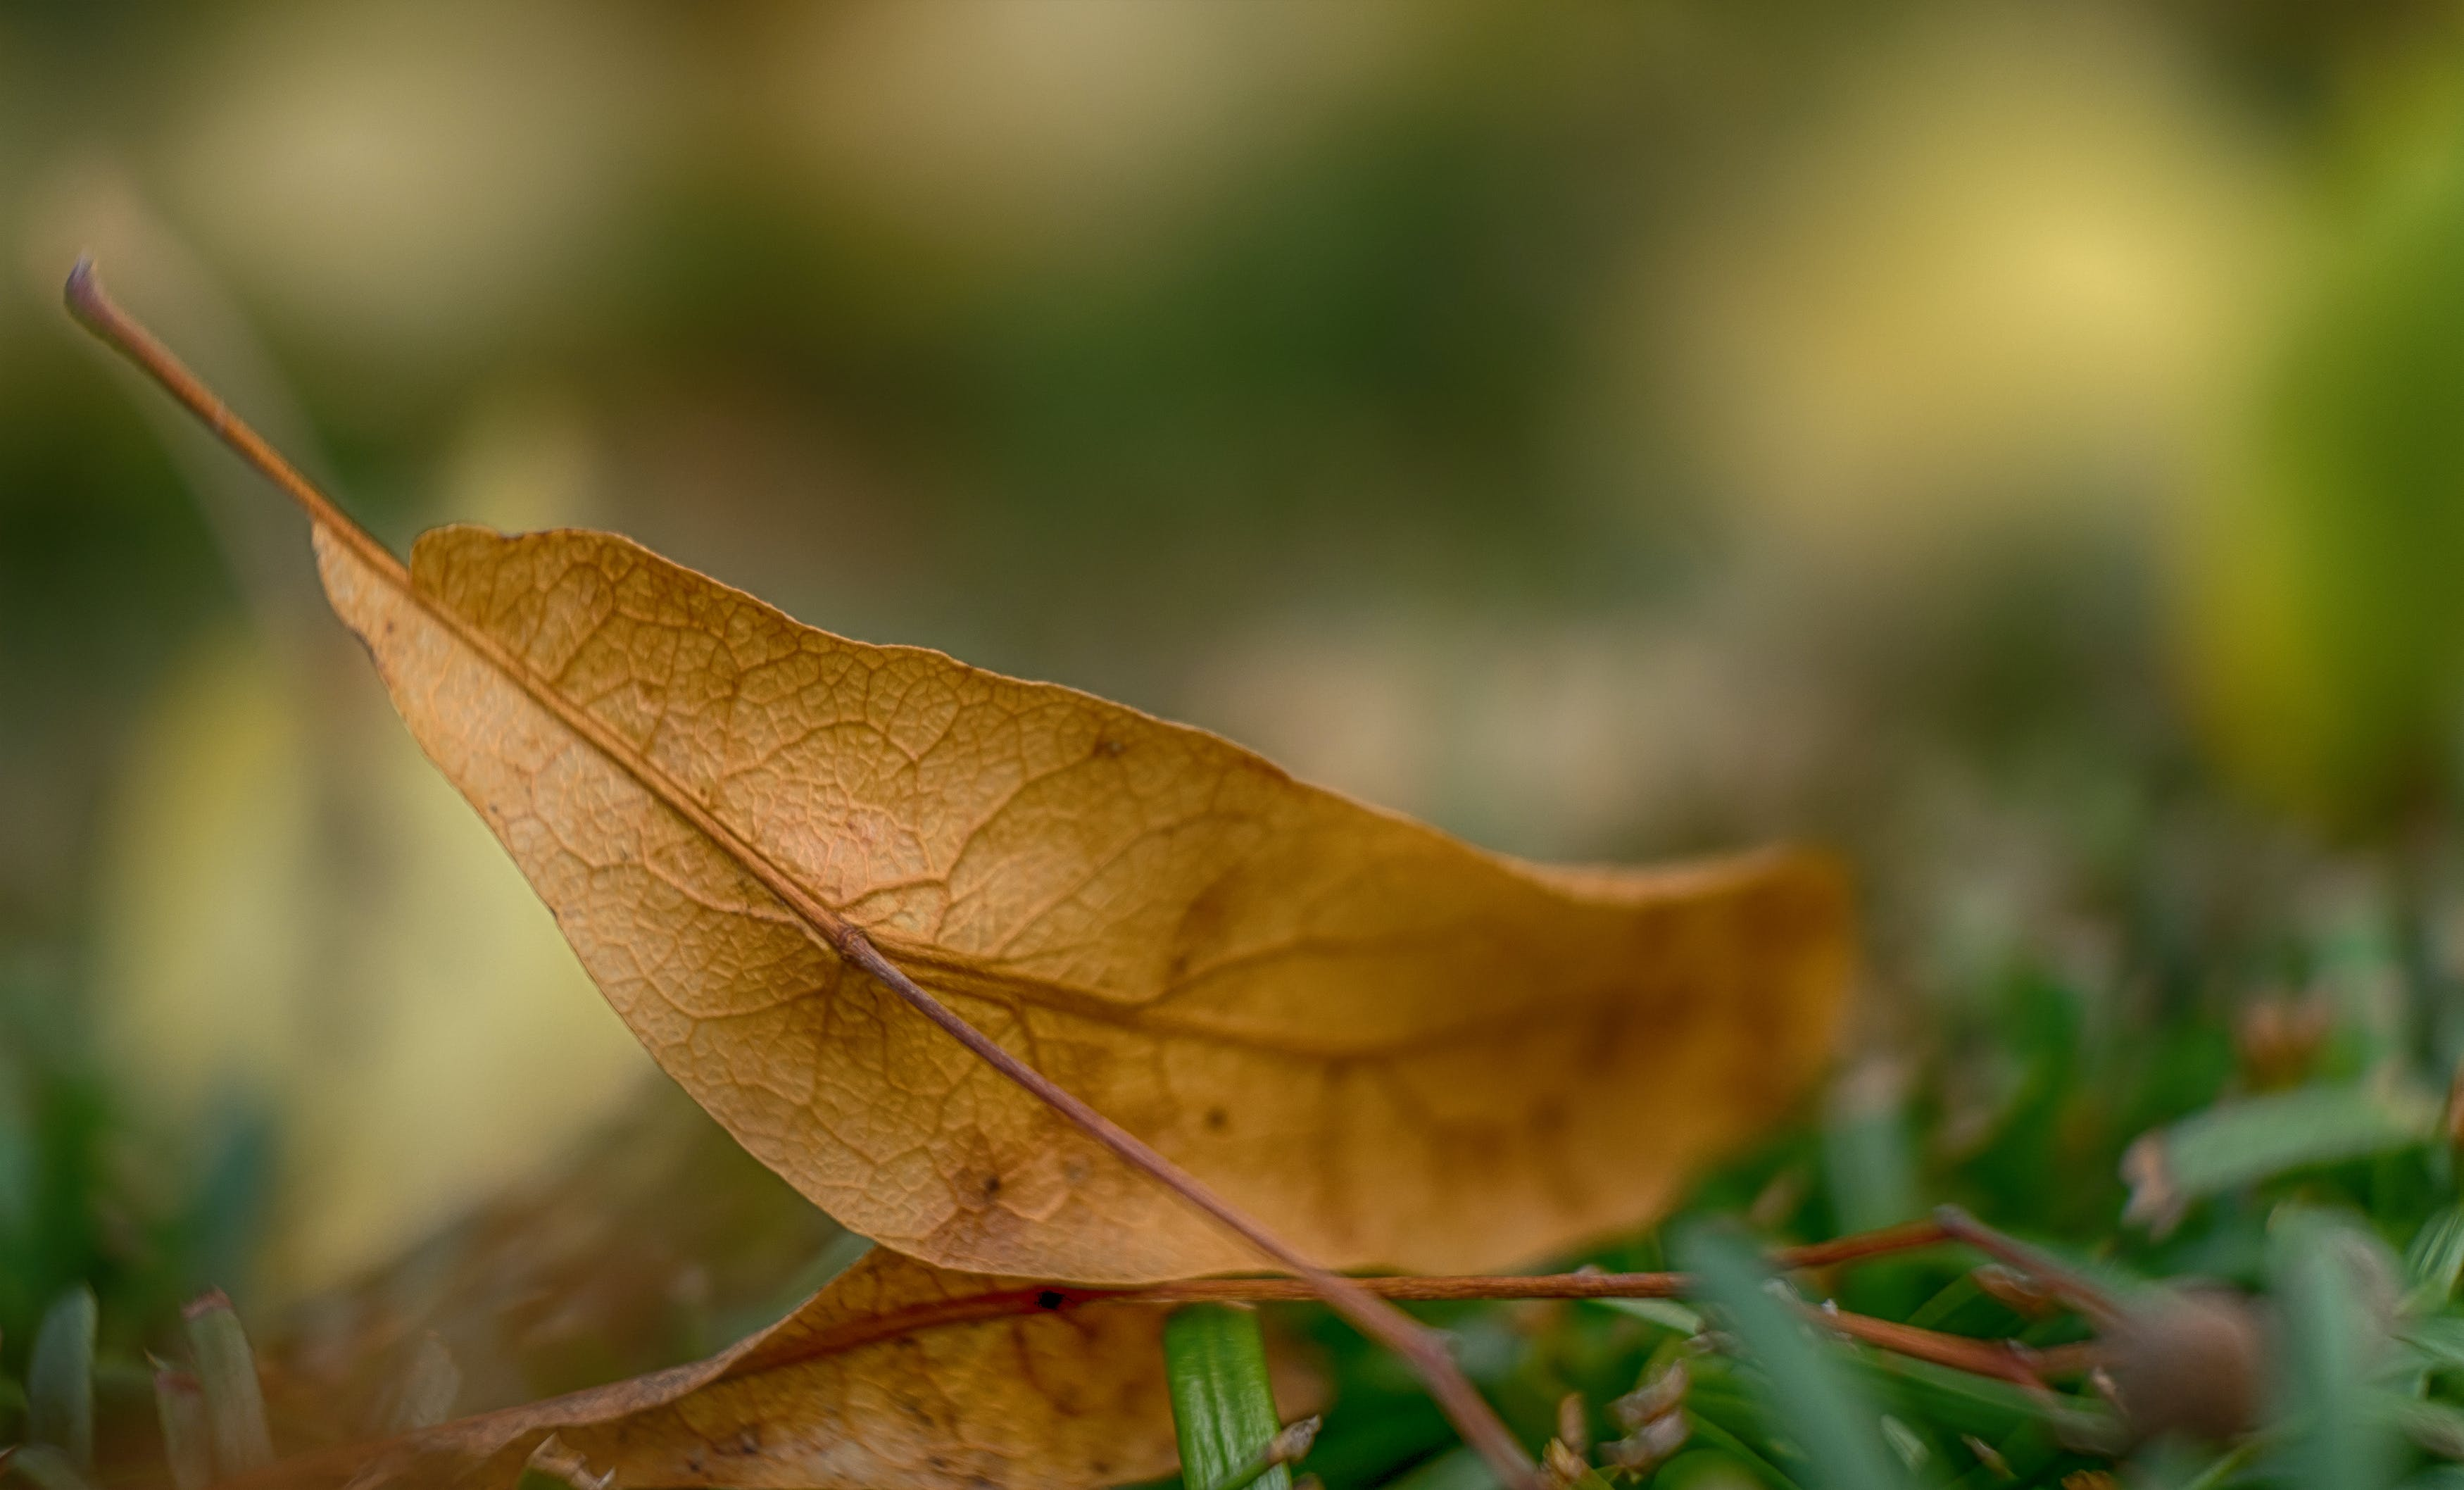 Dry Leaf Shallow Focus Photography